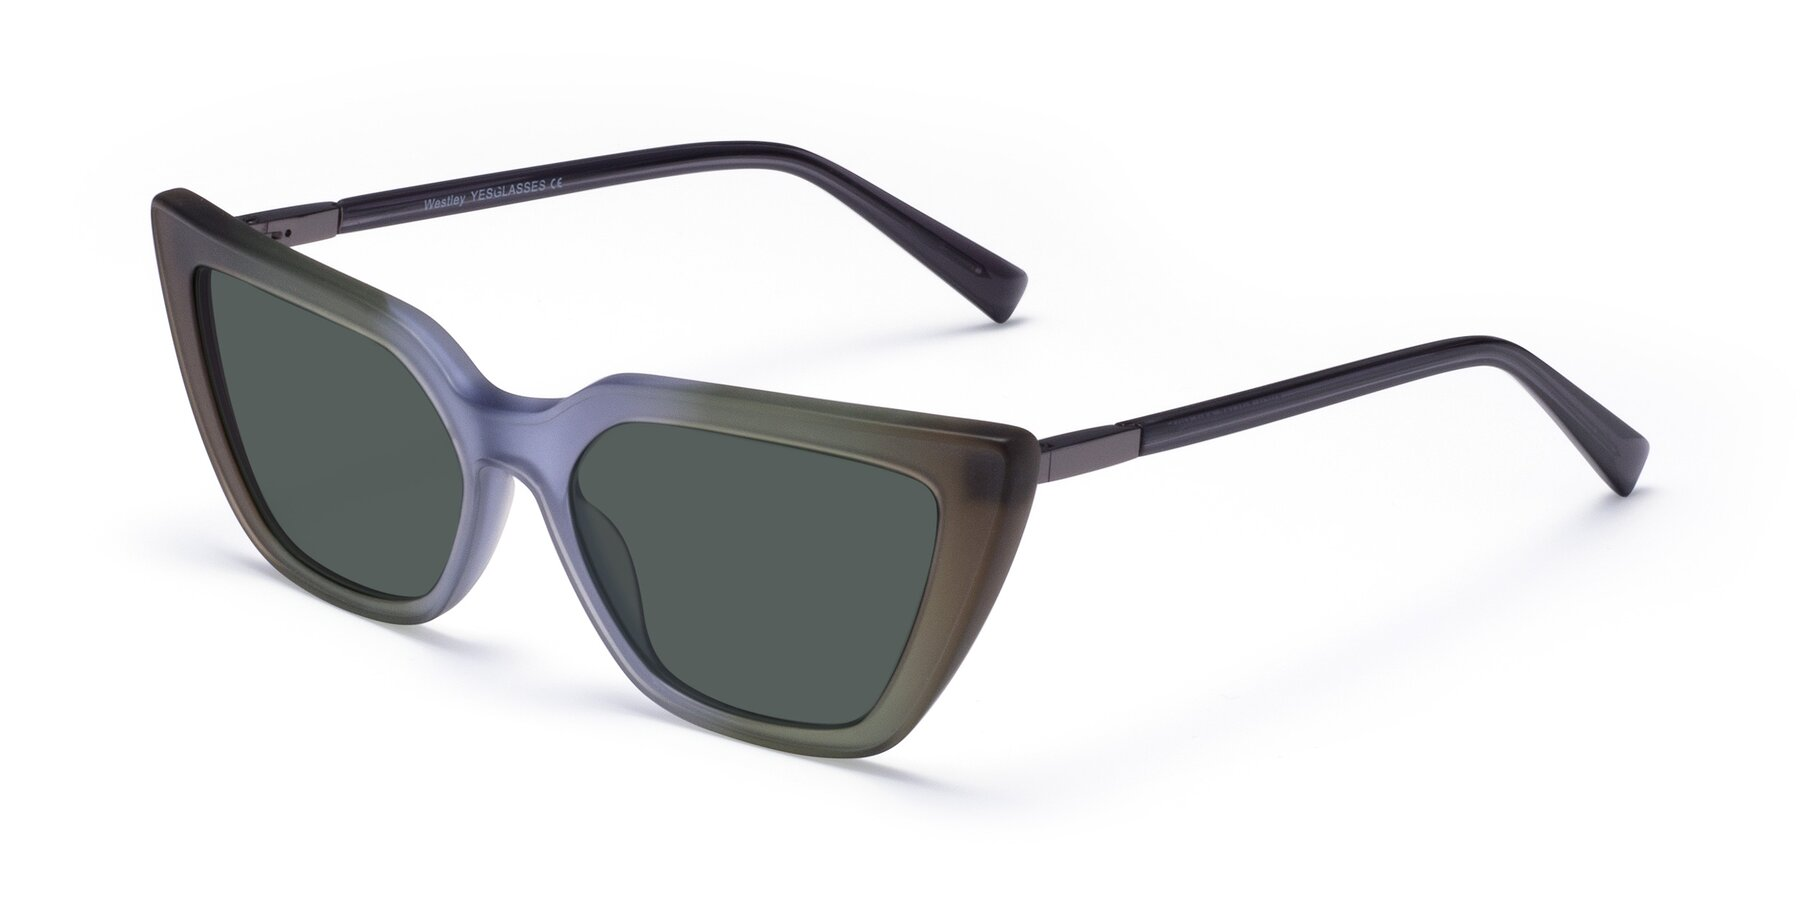 Angle of Westley in Gradient Green with Gray Polarized Lenses